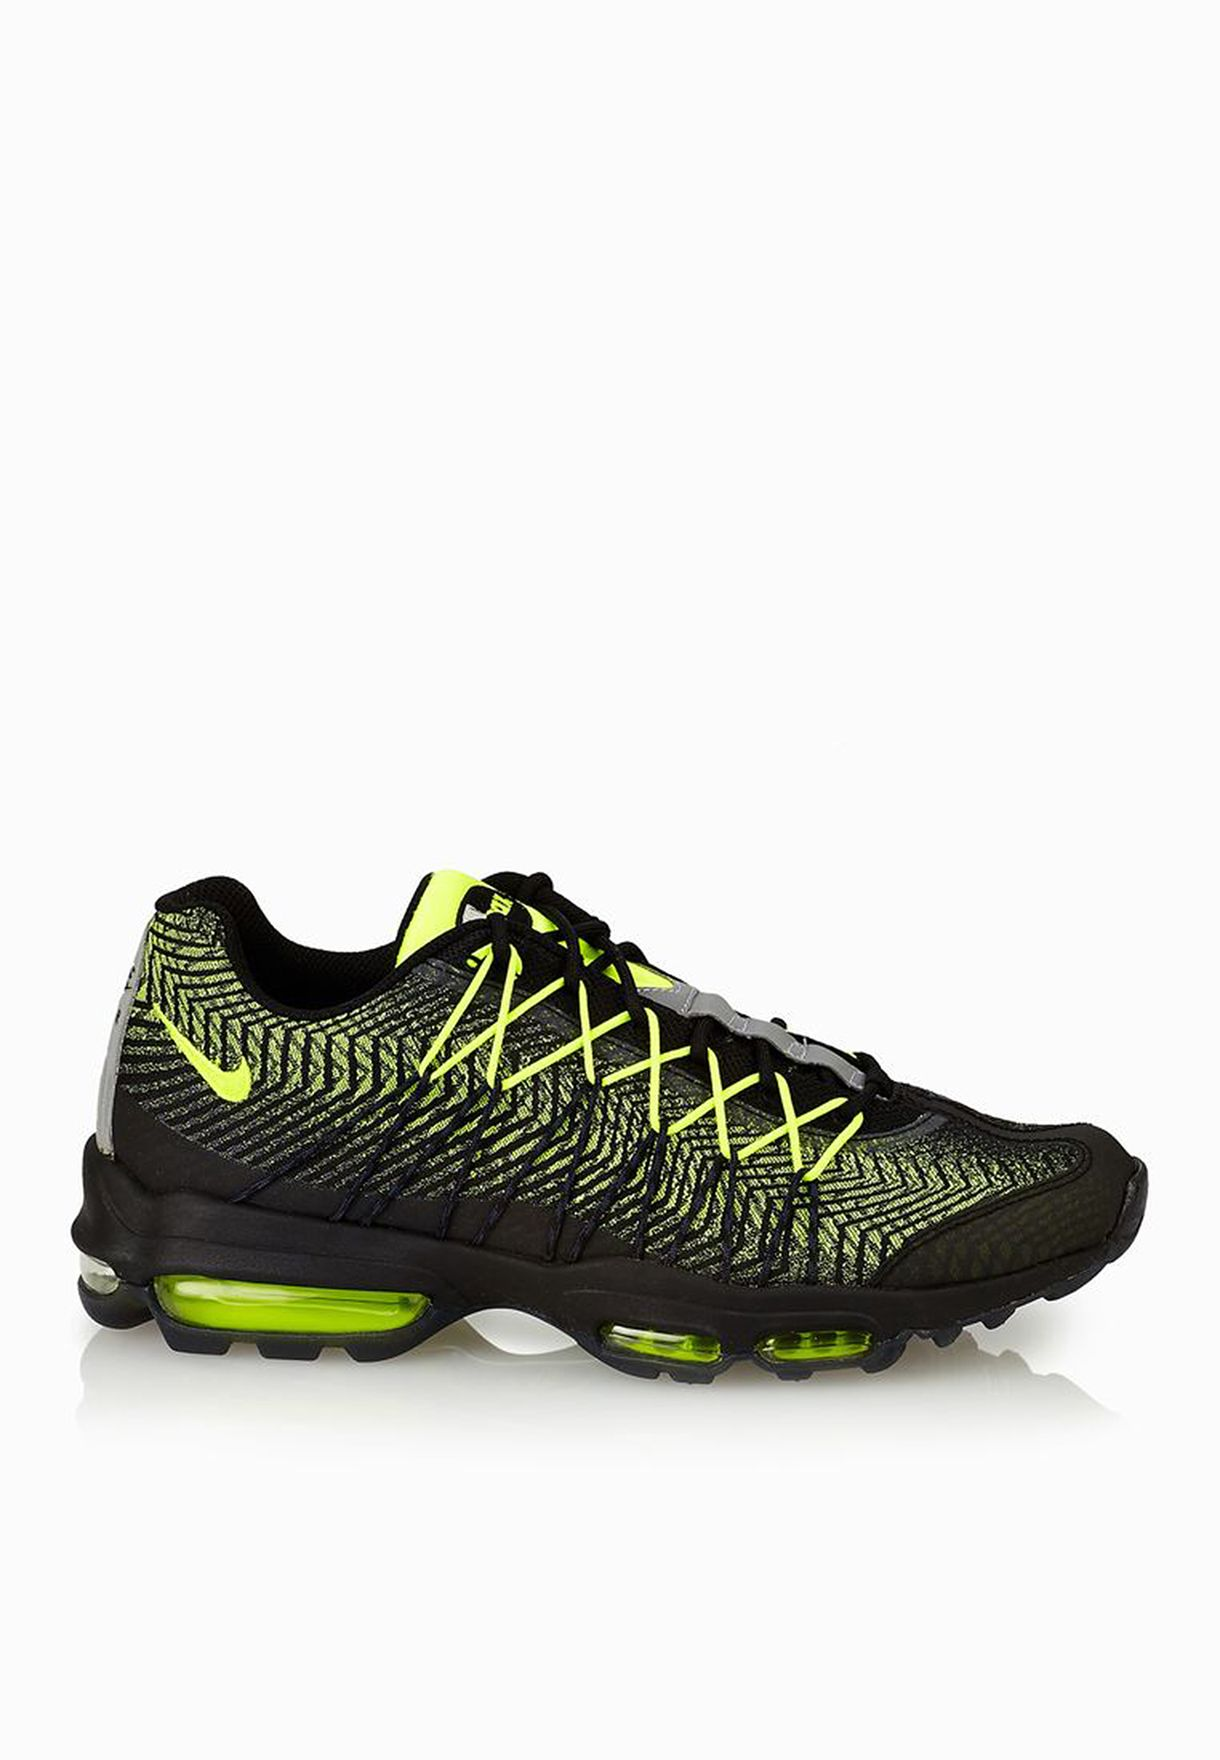 meet b3437 294ba Air Max 95 Ultra JCRD